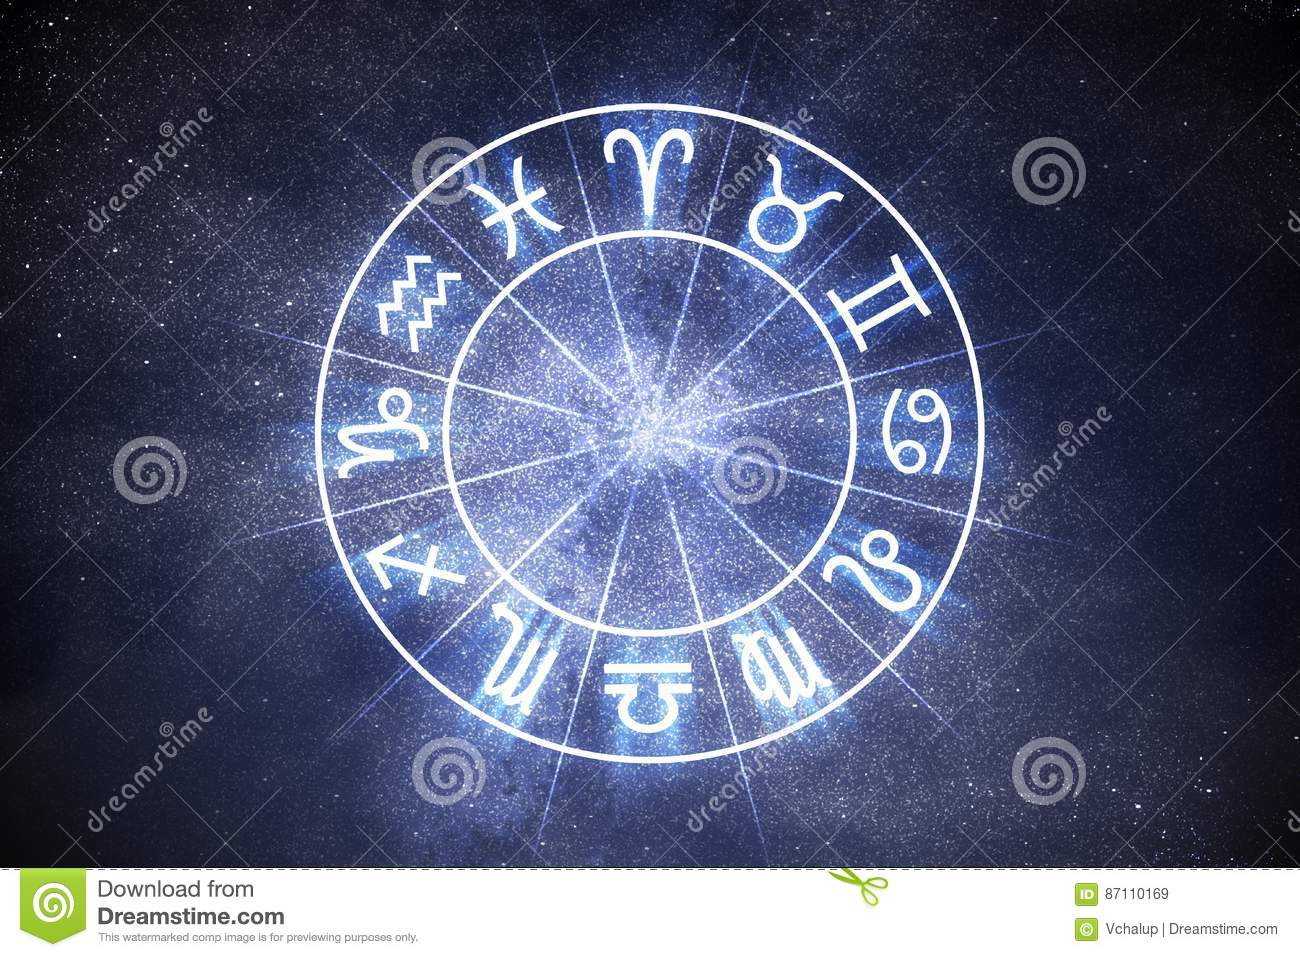 Astrology and horoscopes concept. Astrological zodiac signs in circle.